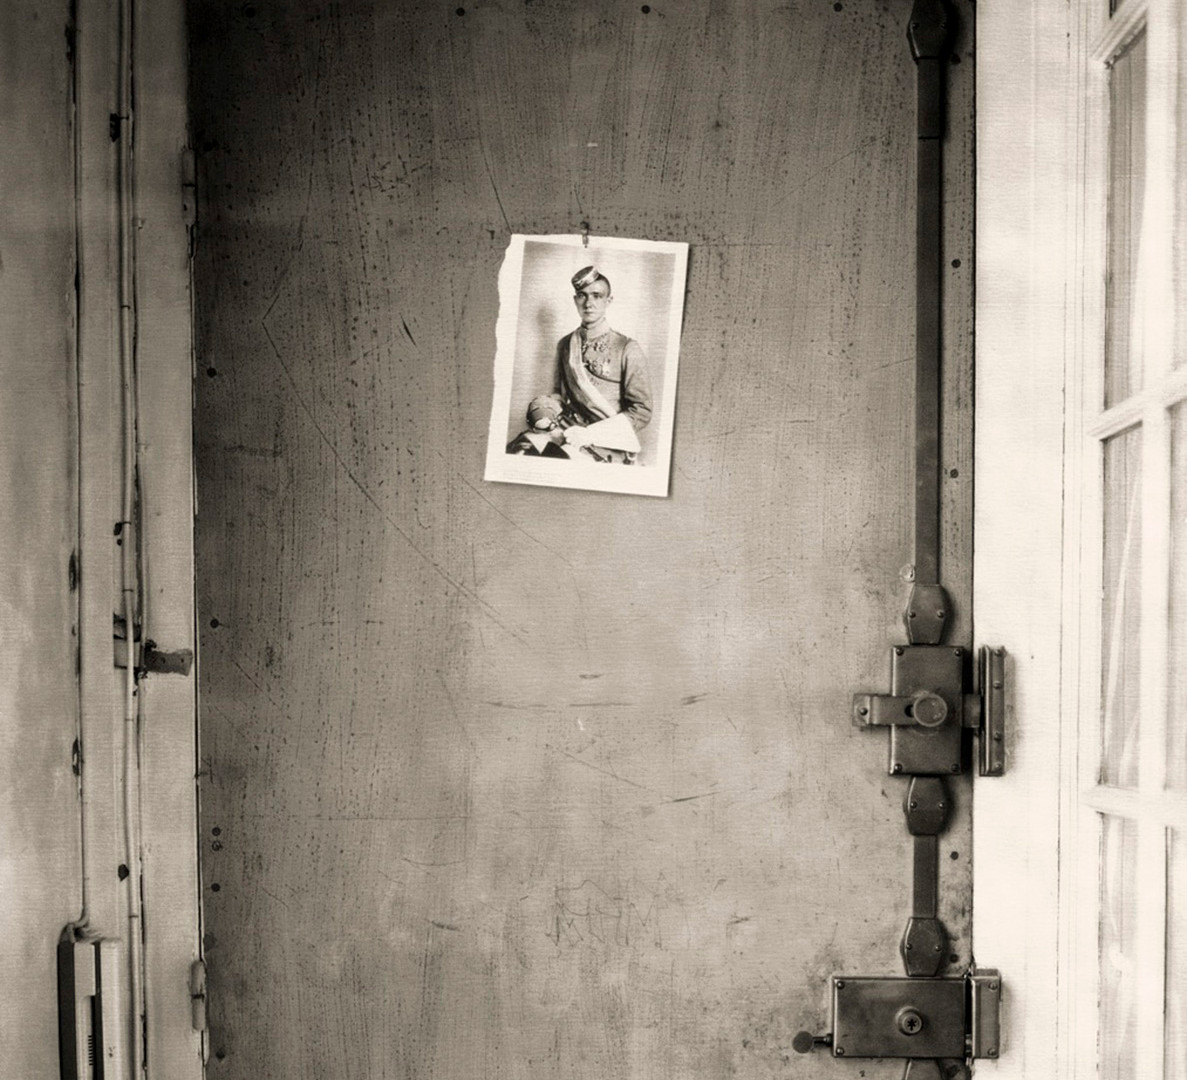 Paolo Roversi, Door, Paris, 2006